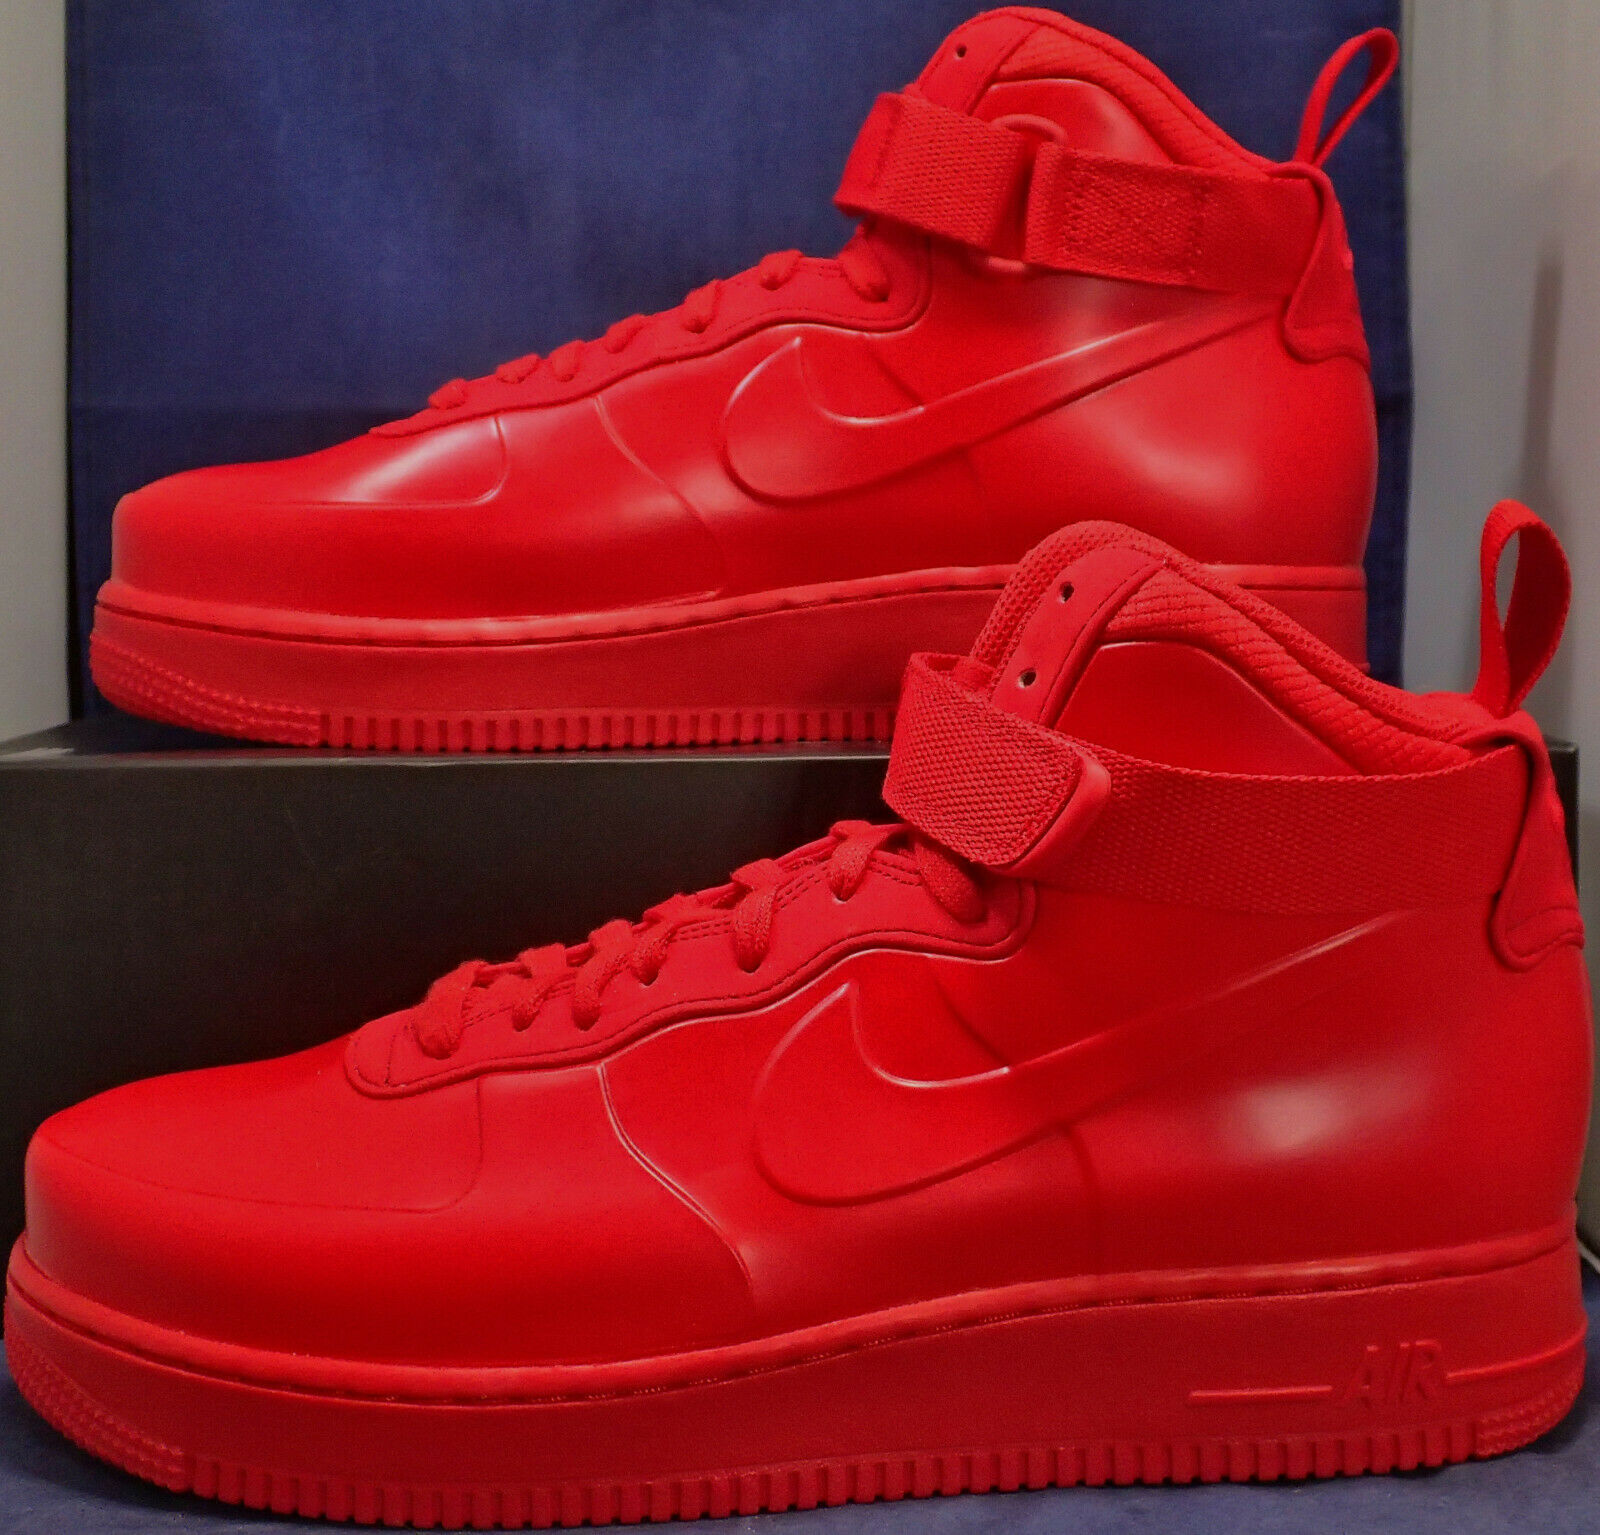 Nike Air Force 1 Foamposite Körbchen Na University Rot Sz 10 (BV1172-600)